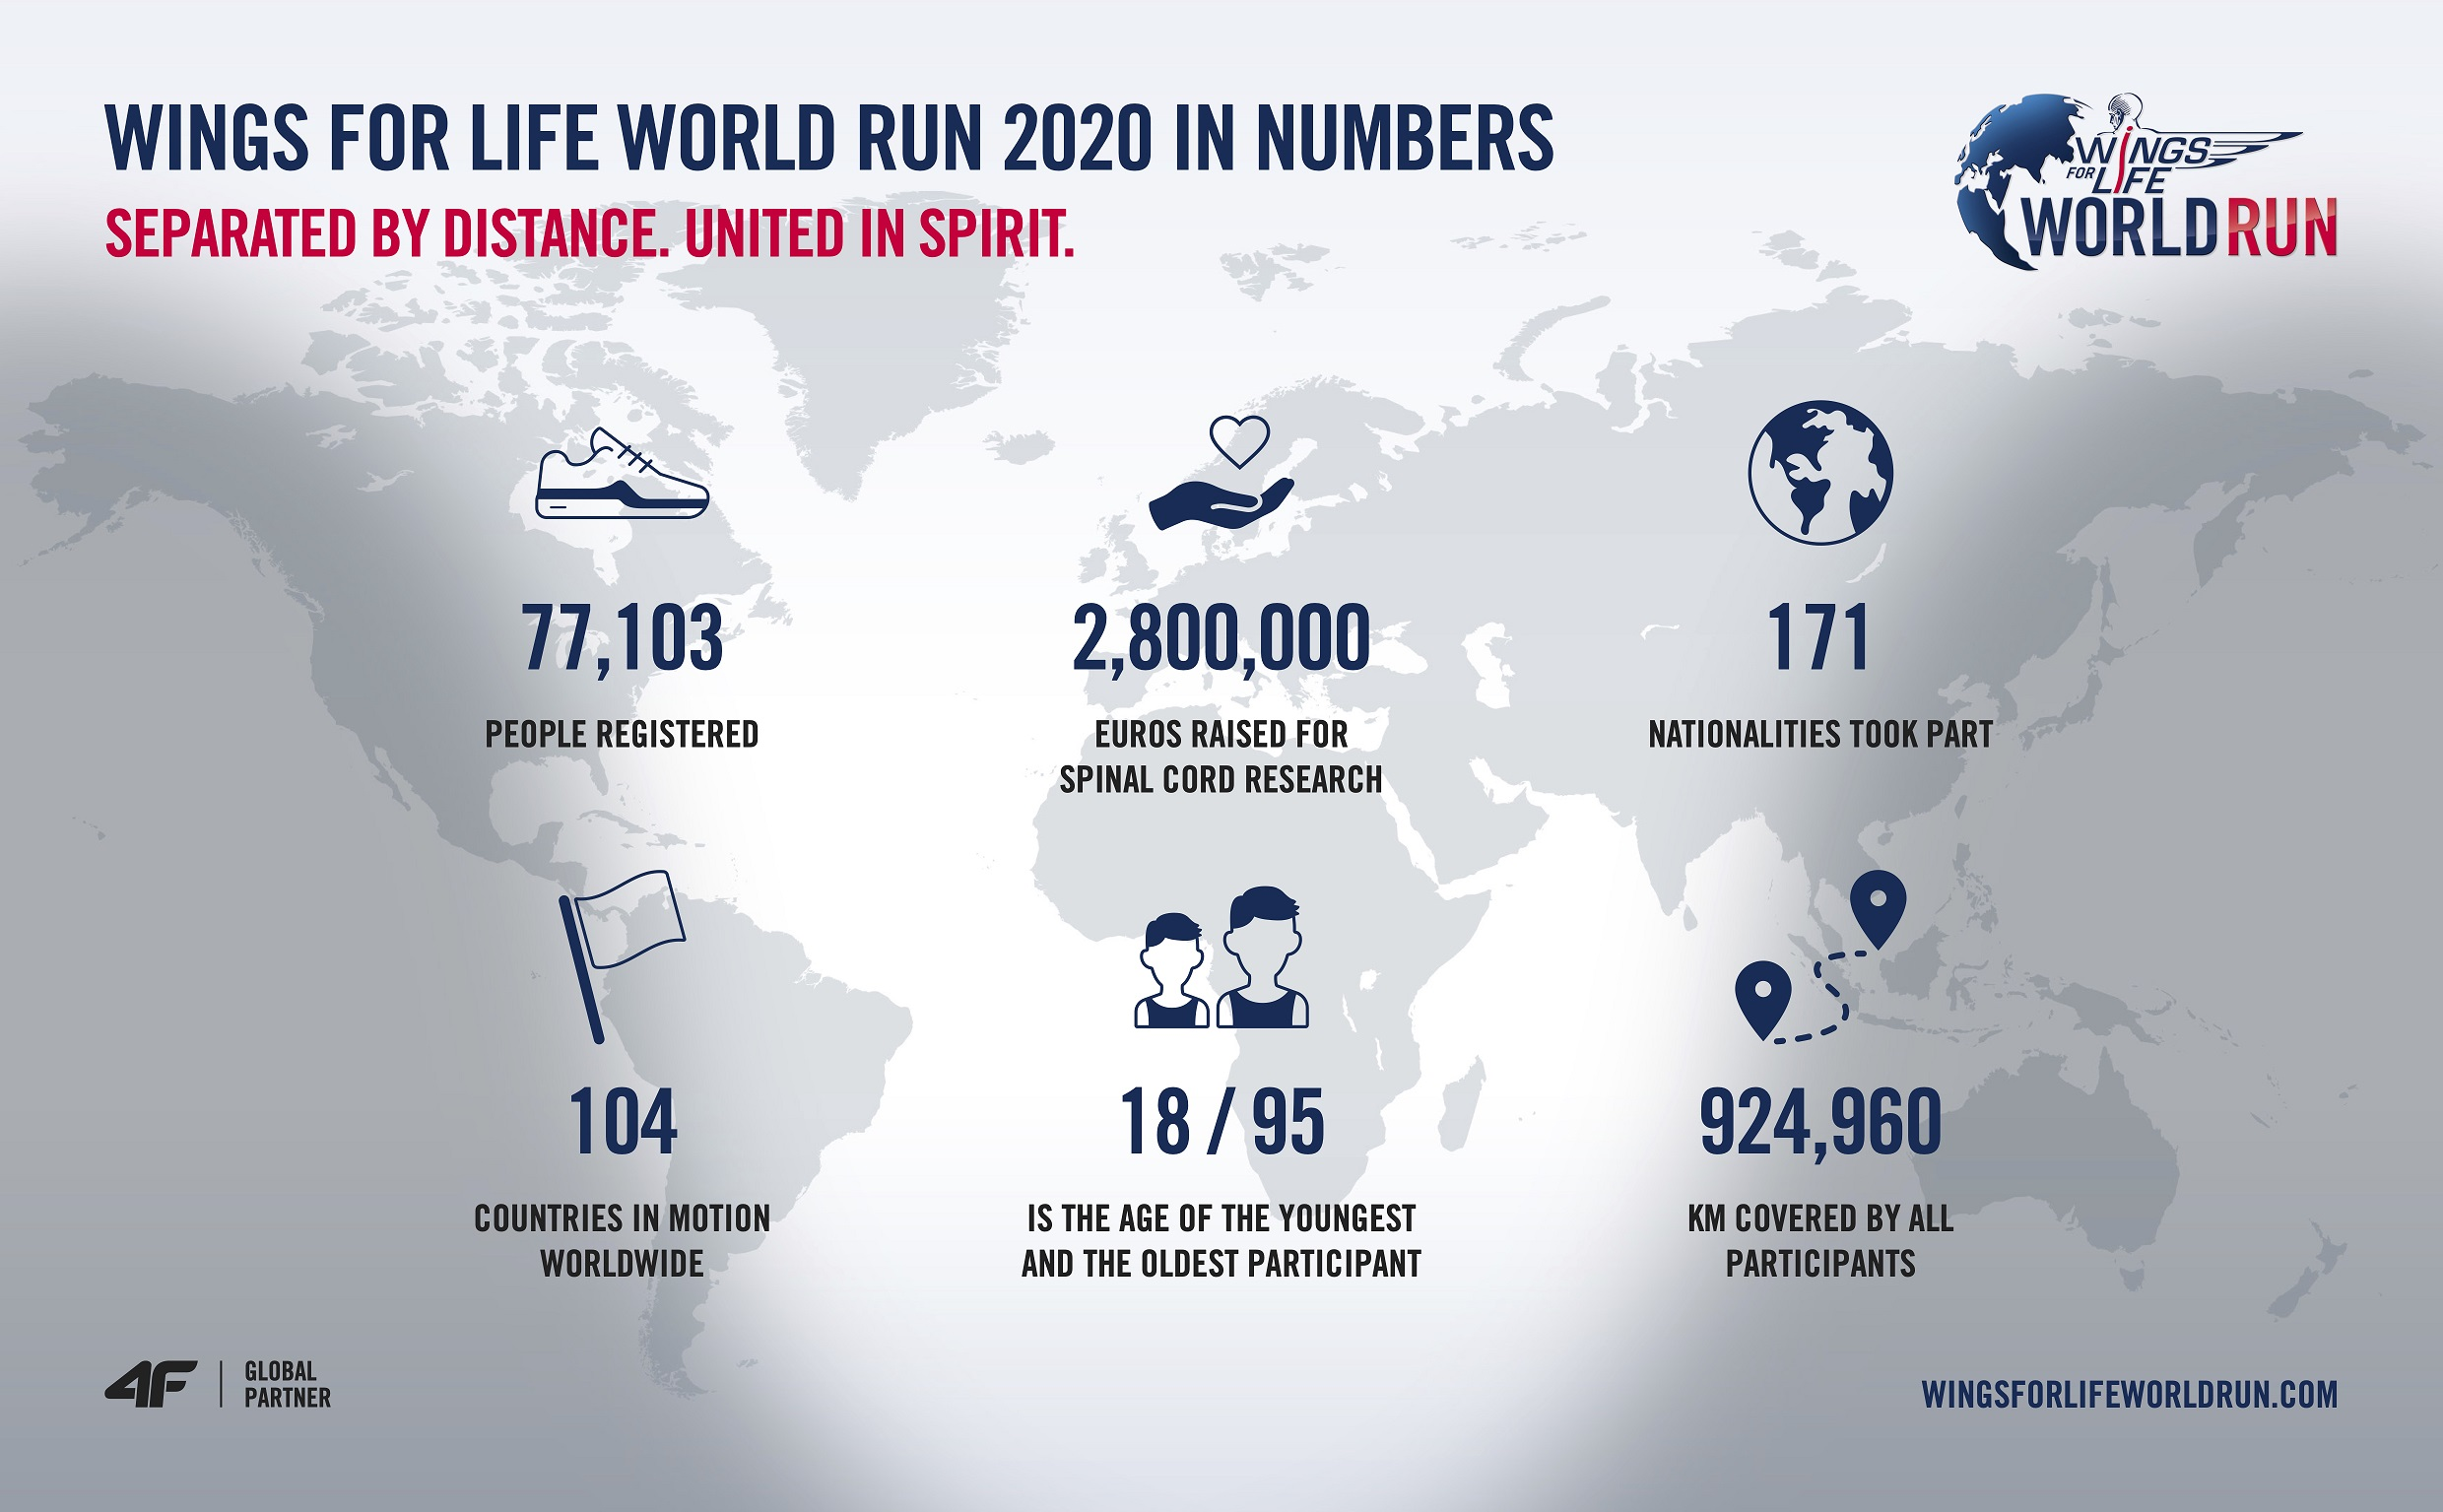 Wings for Life World Run App Run 2020